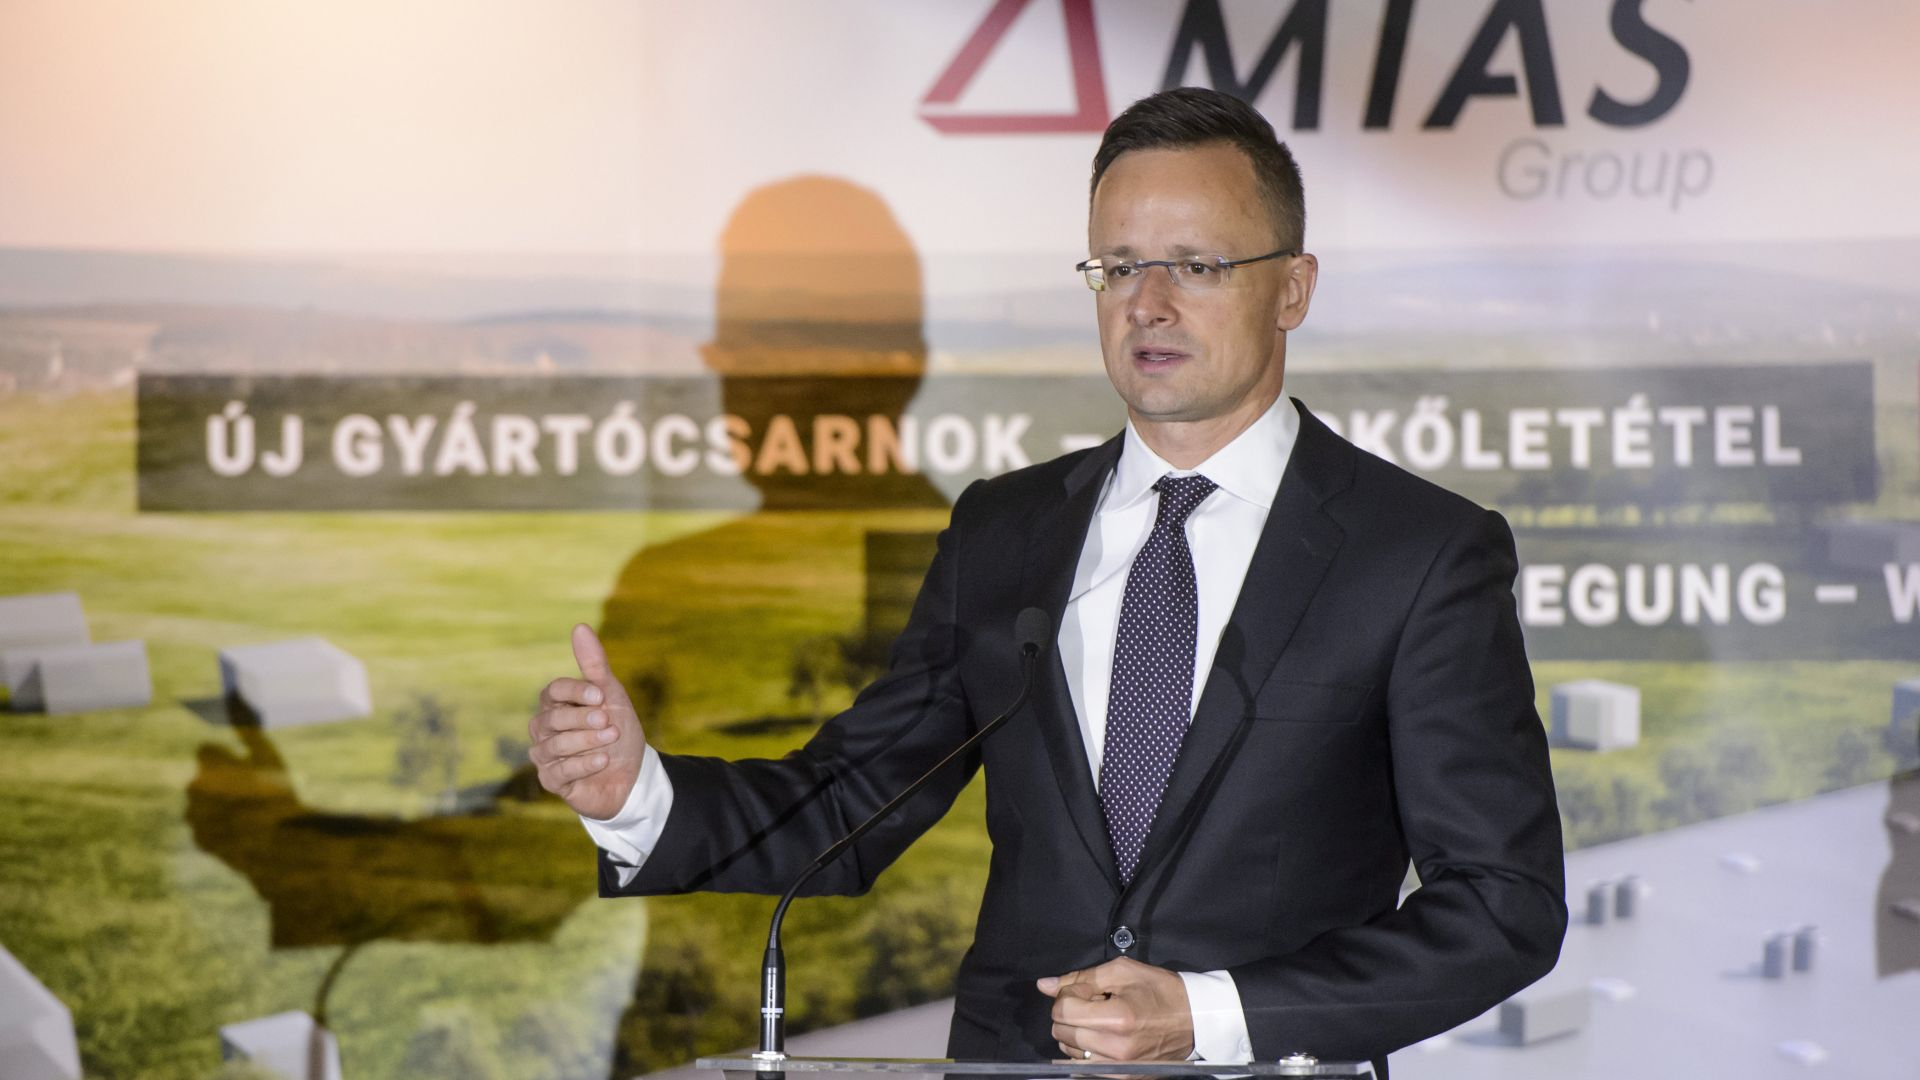 MIAS Group is constructing its second production hall in Gyöngyös